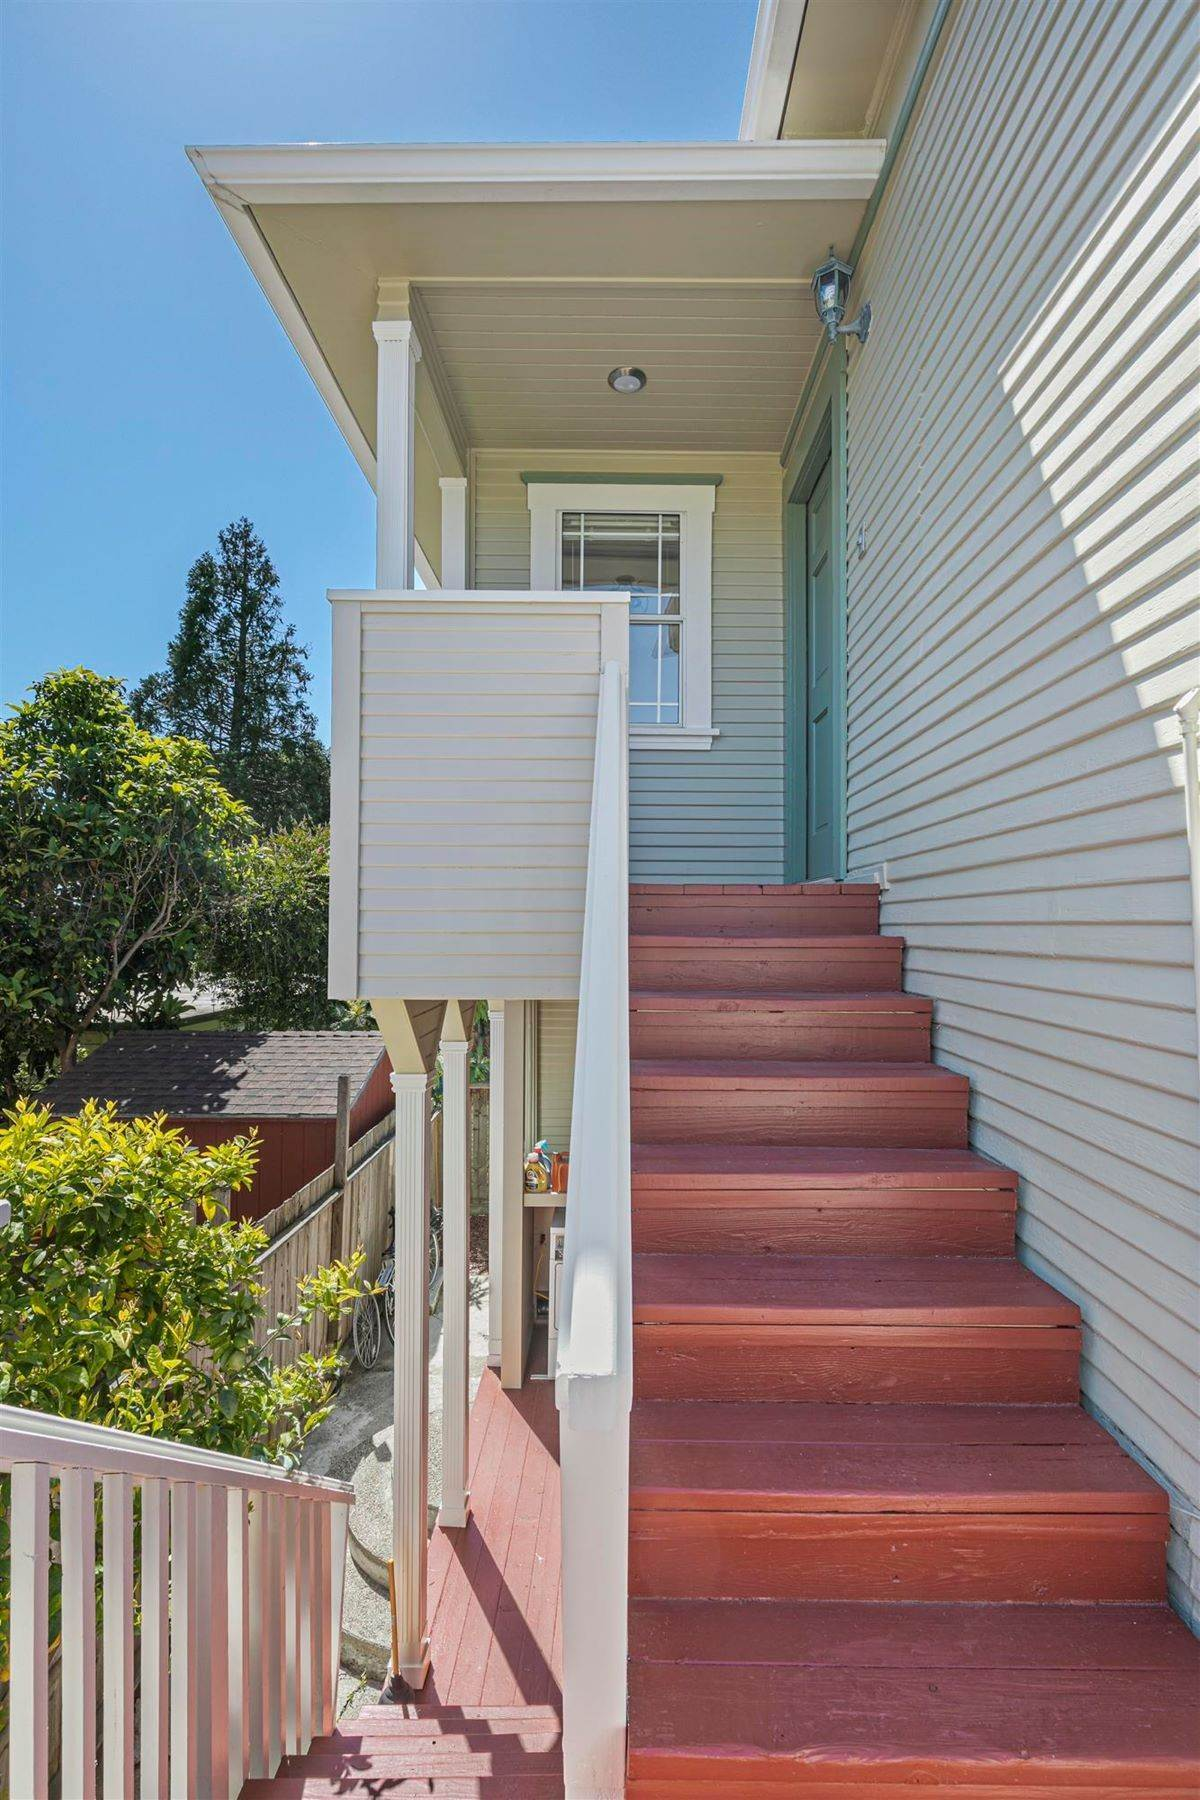 19. Property for Sale at Distinguished Triplex in an Ideal Berkeley Location 2240 Ward Street Berkeley, California 94705 United States